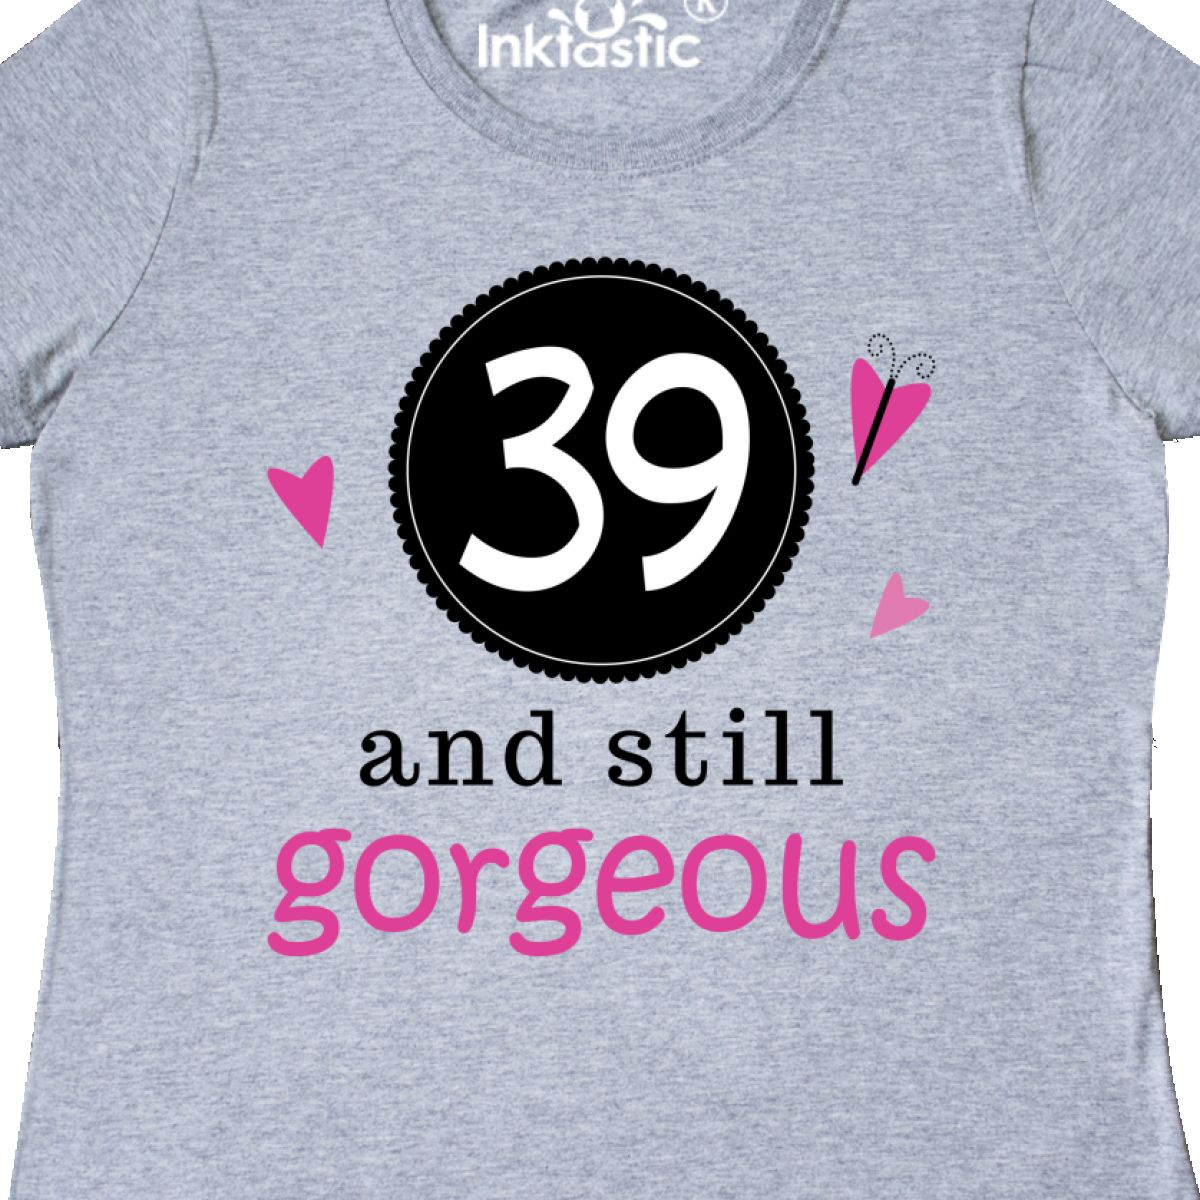 Inktastic-39th-Birthday-Gorgeous-Women-039-s-T-Shirt-39-Years-Old-Turning-Im-Cute